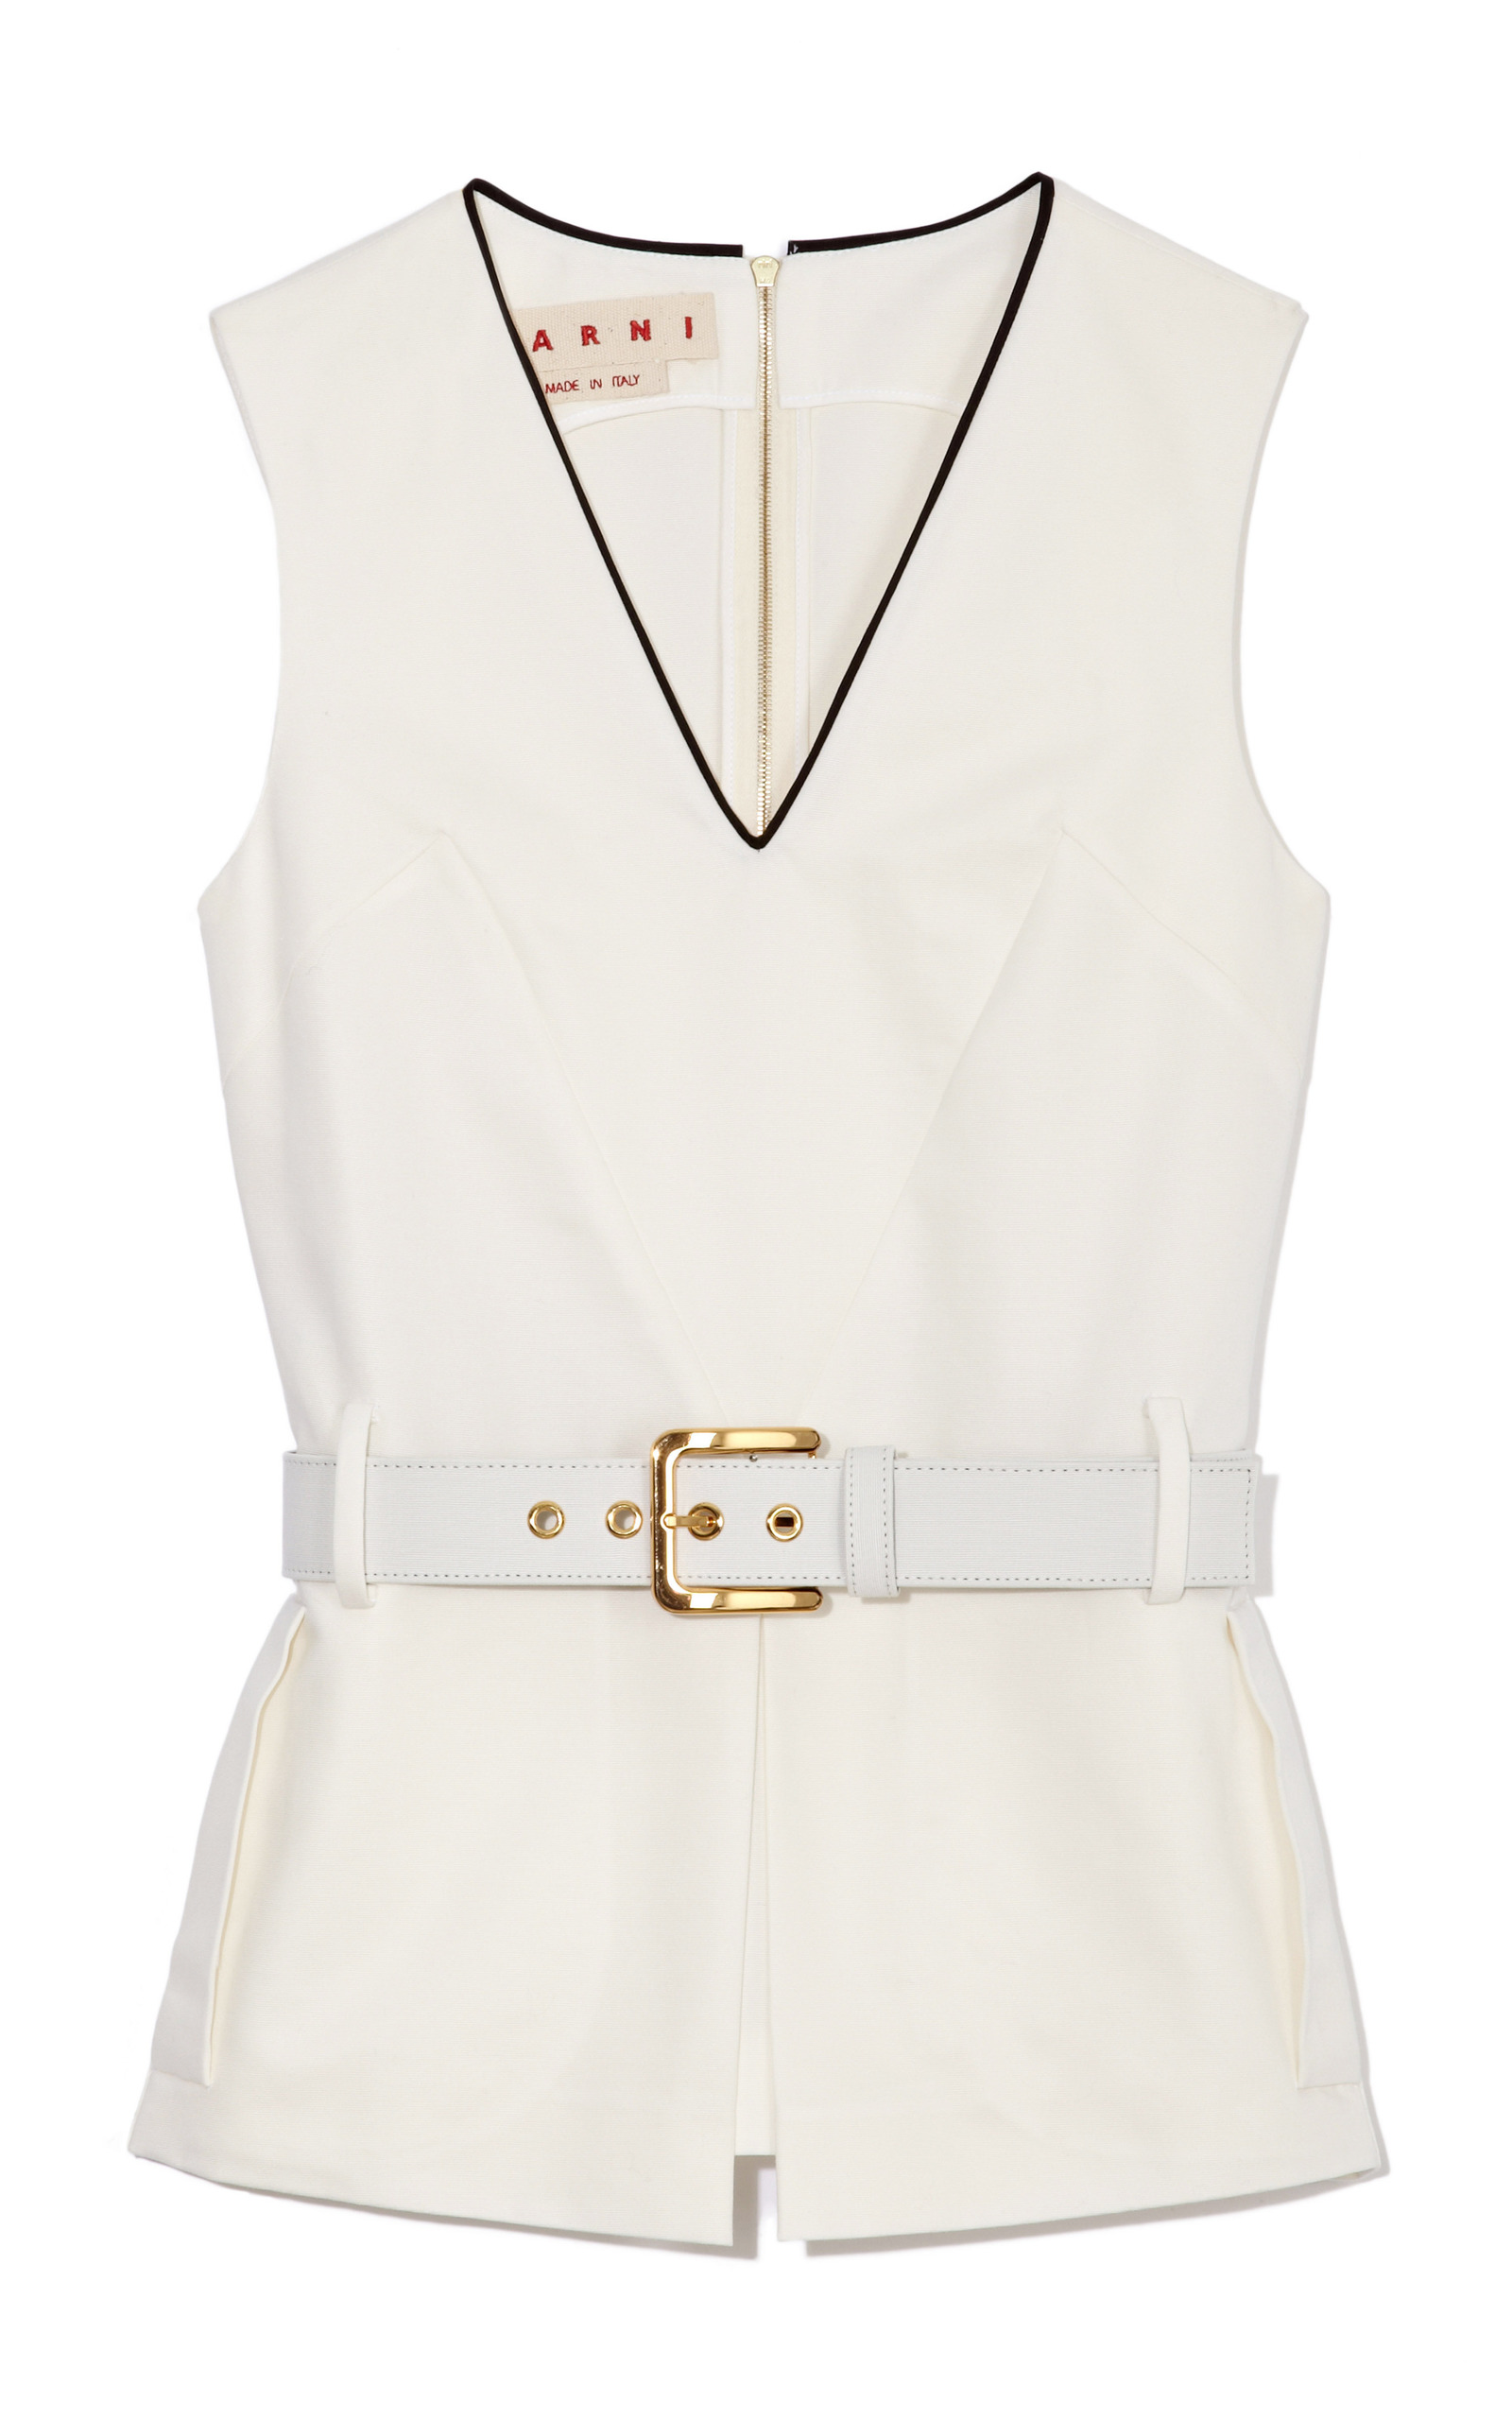 Affordable Cheap Price Marni Sleeveless V-Neckline Top Free Shipping Lowest Price 1fJ15jRUw